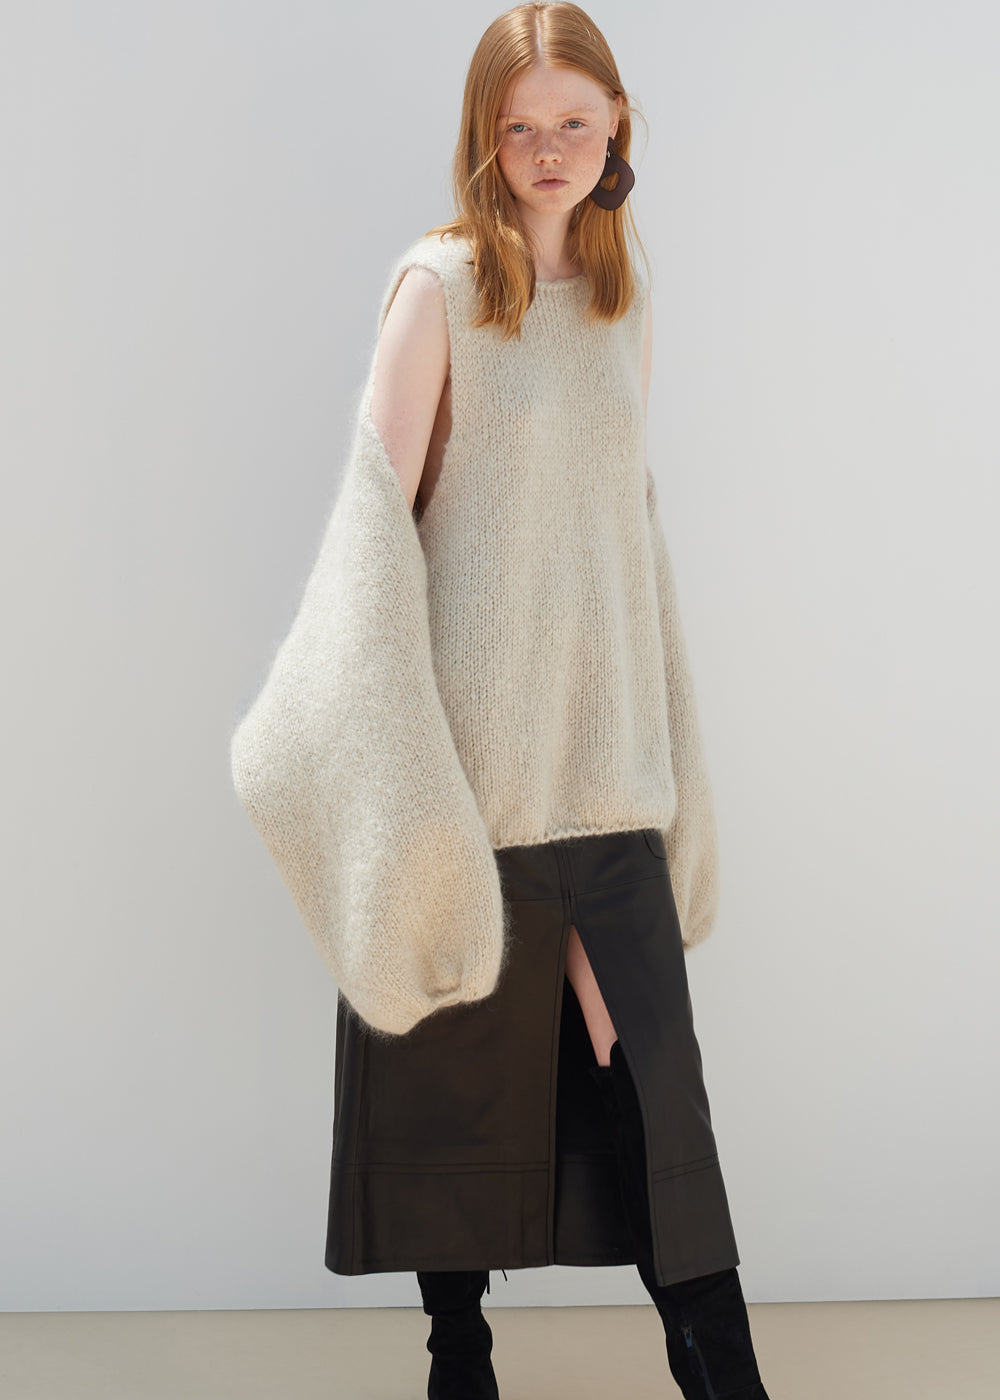 SHEEPSKIN LEATHER SKIRT